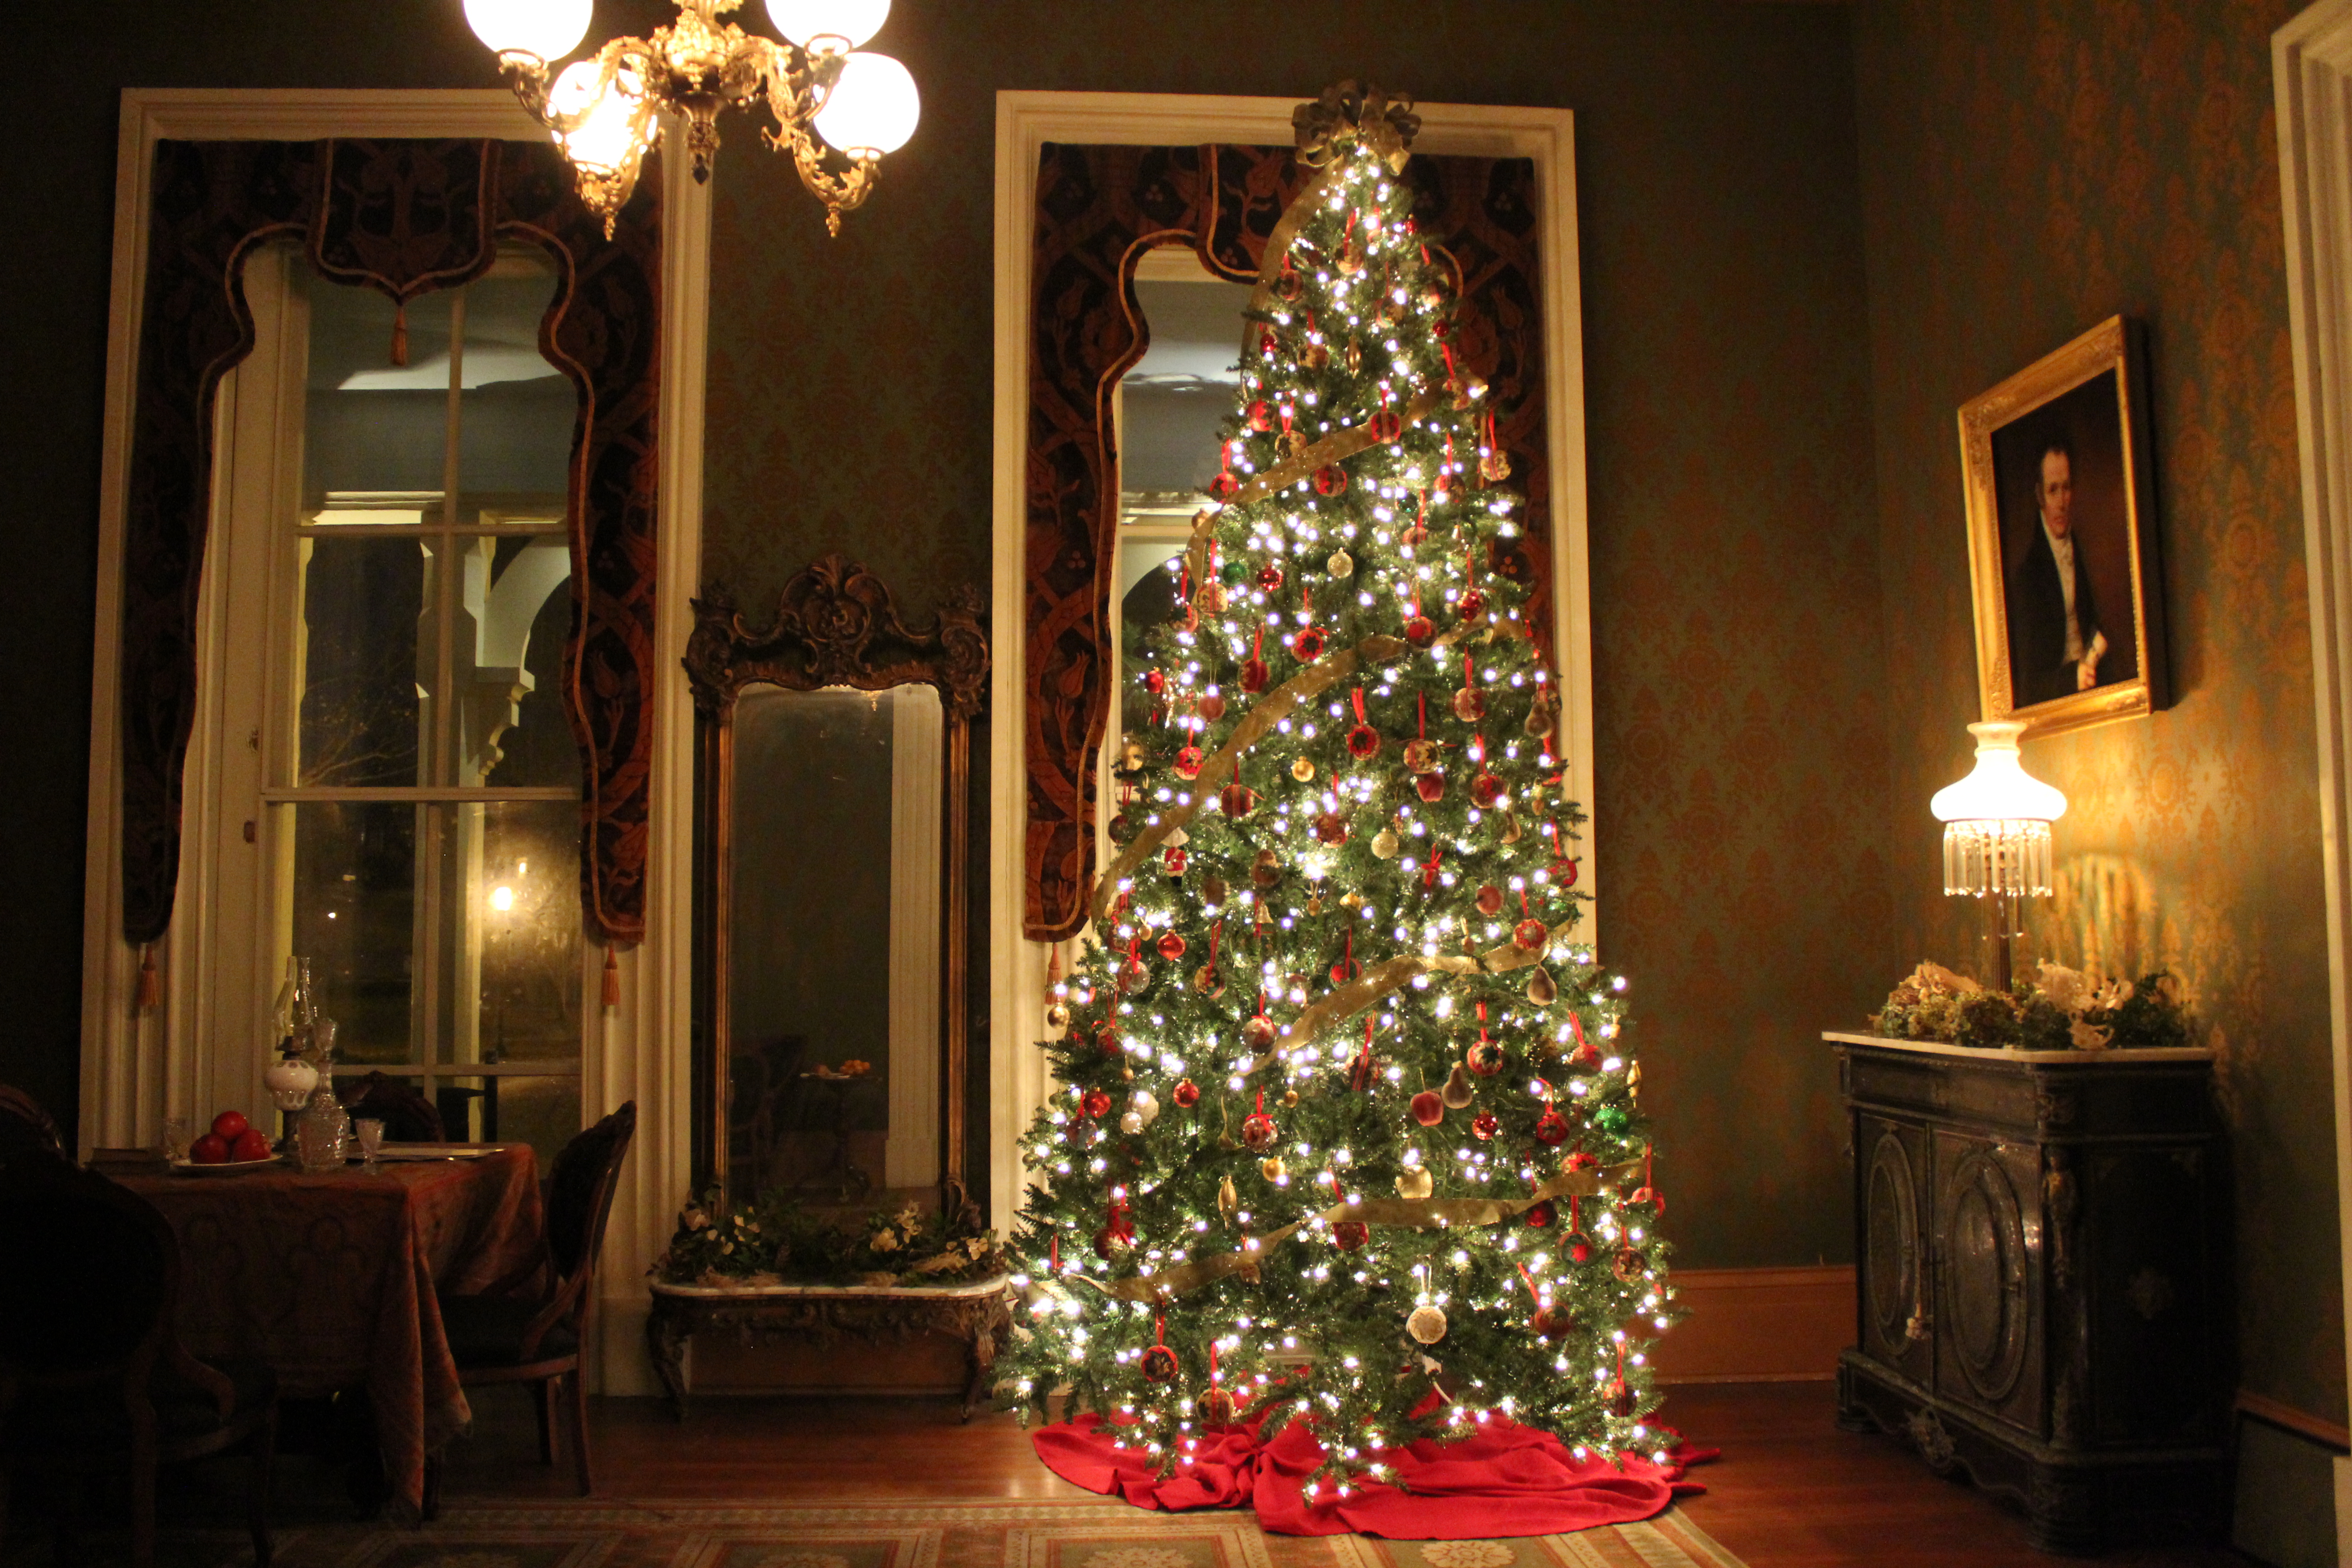 Oakwood Christmas Tour 2019 Oaklands Mansion 36th Annual Christmas Candlelight Tour of Homes